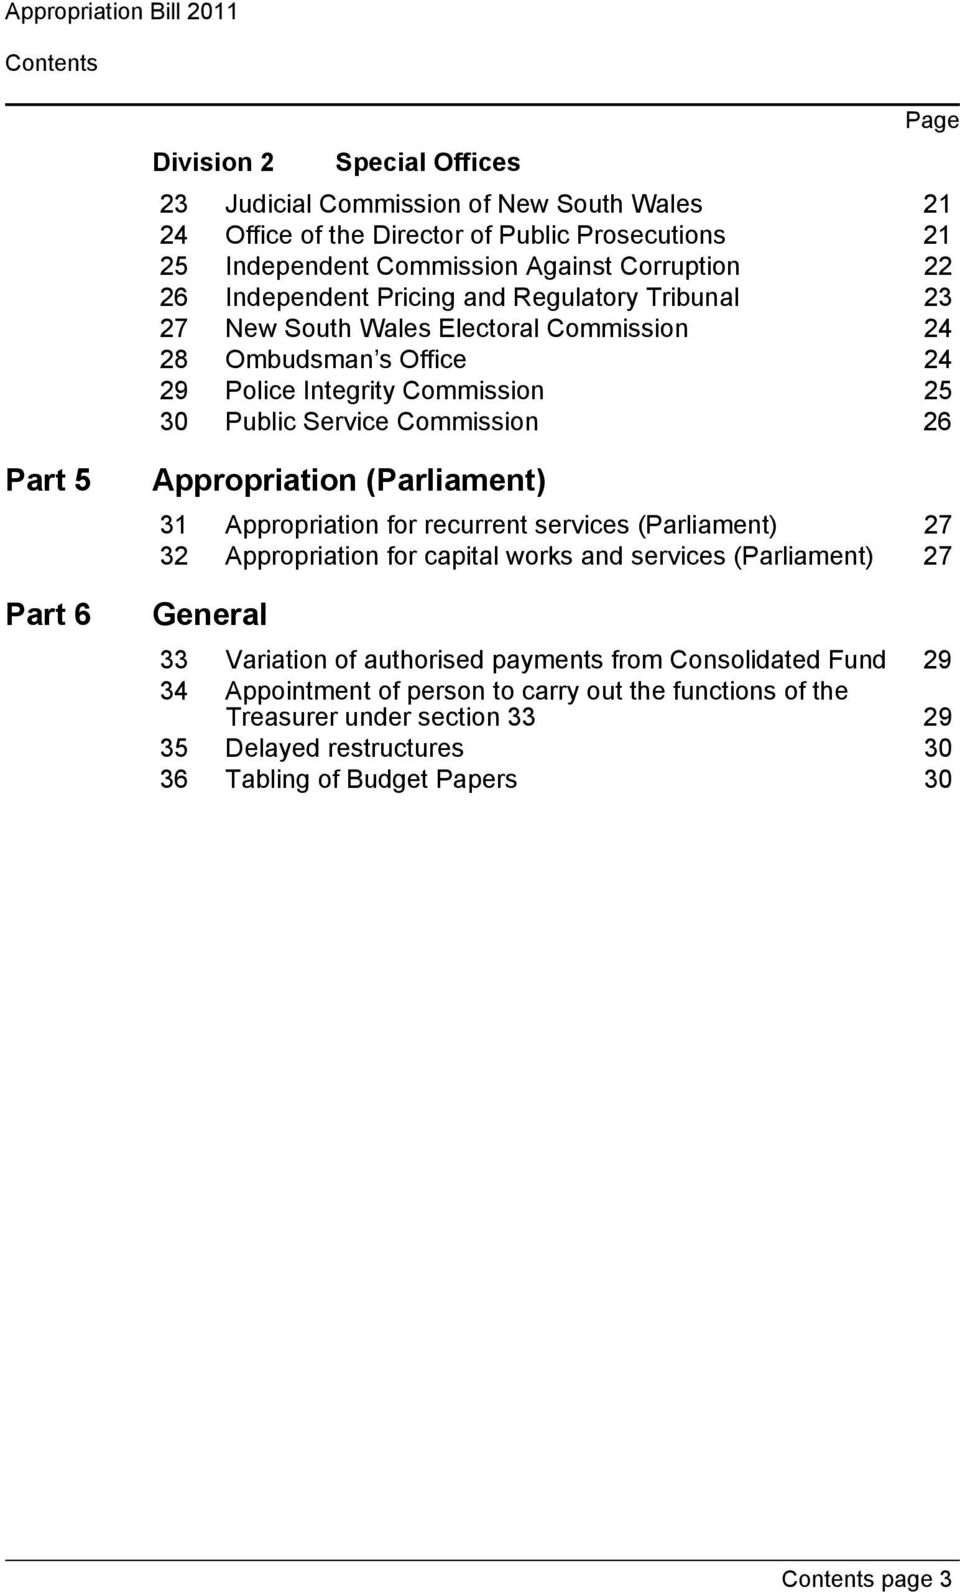 26 Part 5 Part 6 Appropriation (Parliament) 31 Appropriation for recurrent services (Parliament) 27 32 Appropriation for capital works and services (Parliament) 27 General 33 Variation of